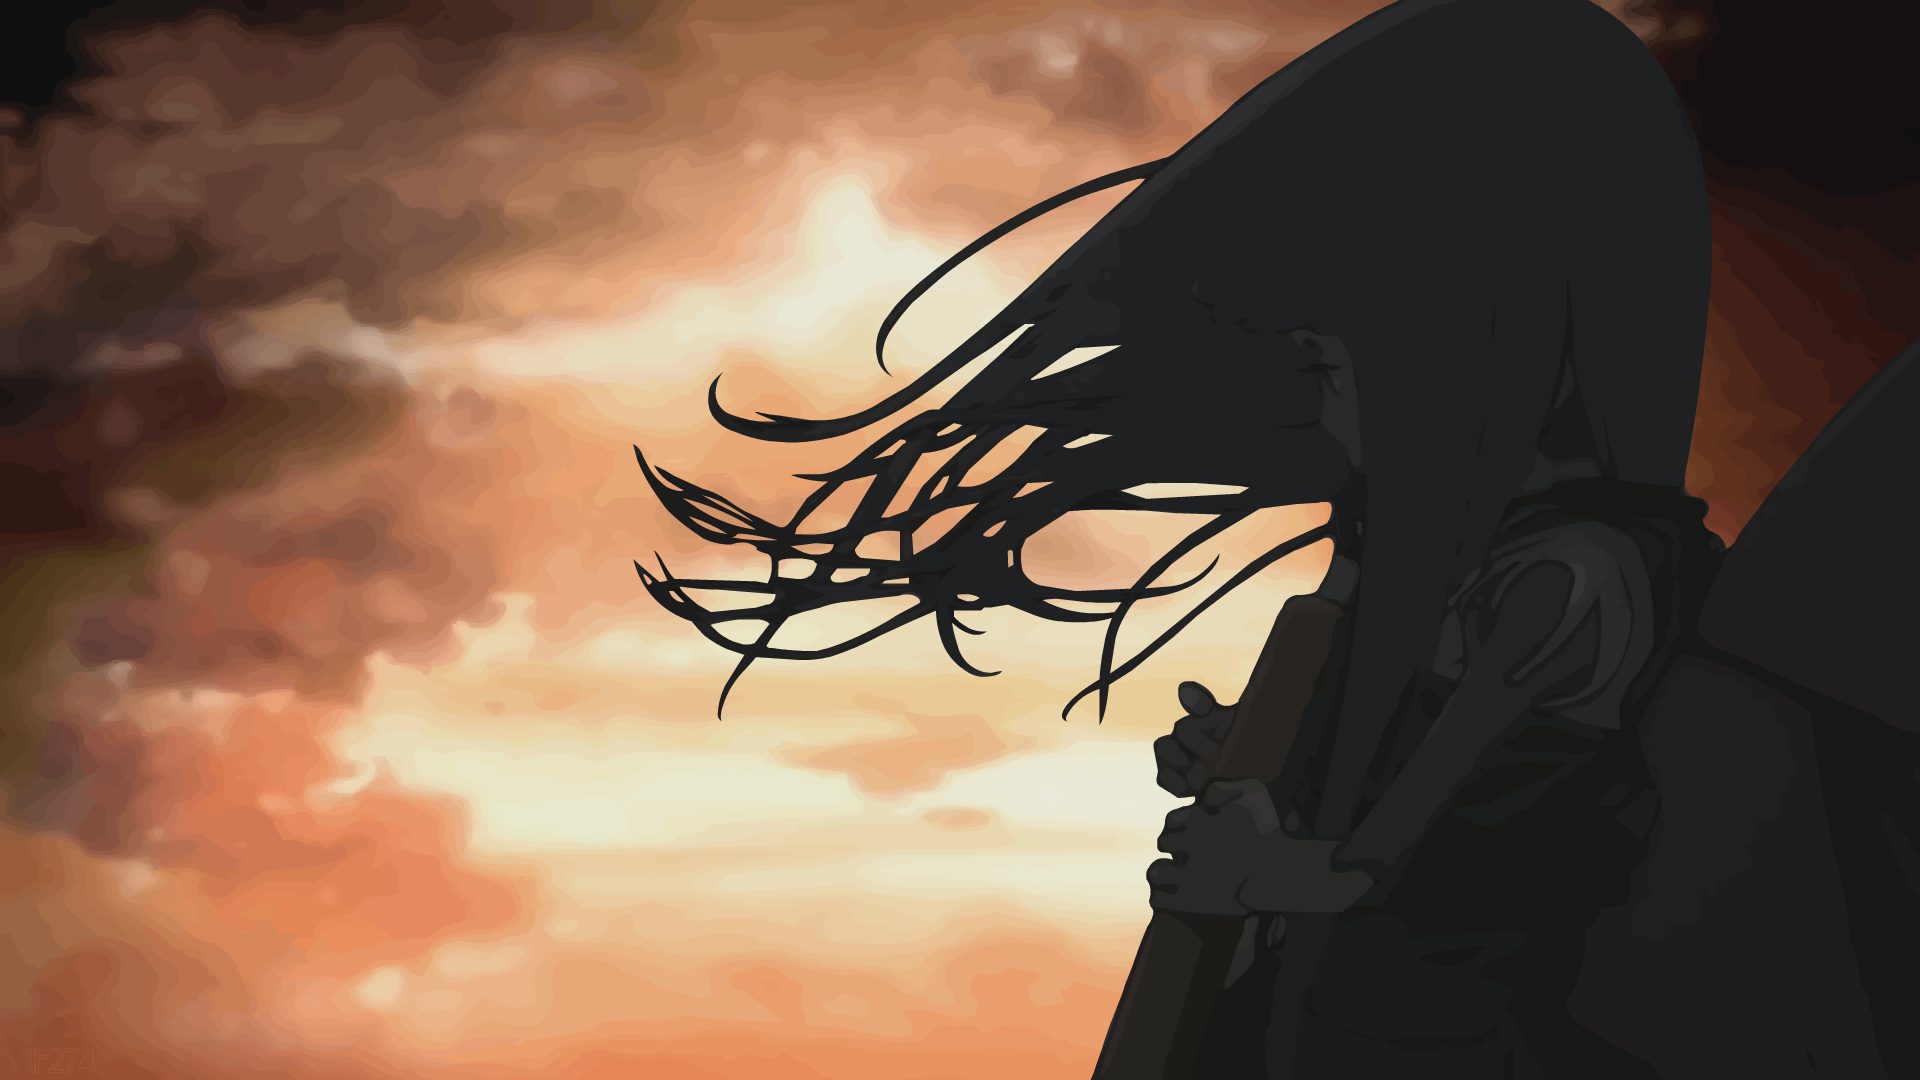 Ae86 Wallpaper Hd Backgrounds: 76 Ergo Proxy HD Wallpapers